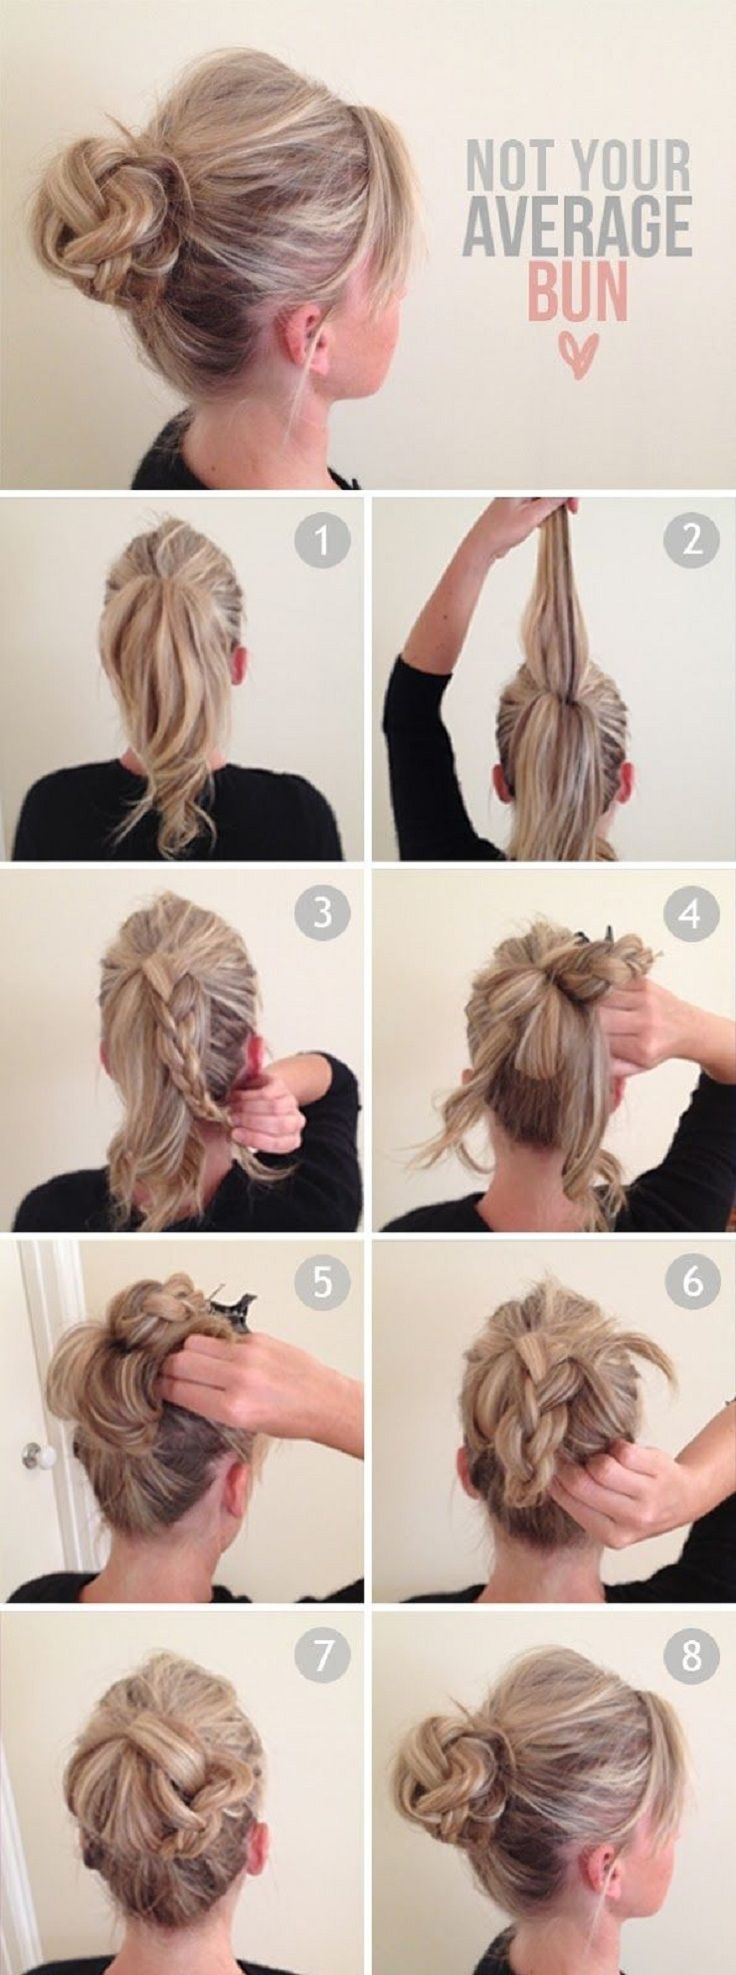 Hairstyle Tutorials New Top 10 Hairstyle Tutorials For This Fall  Top 10 Hairstyles